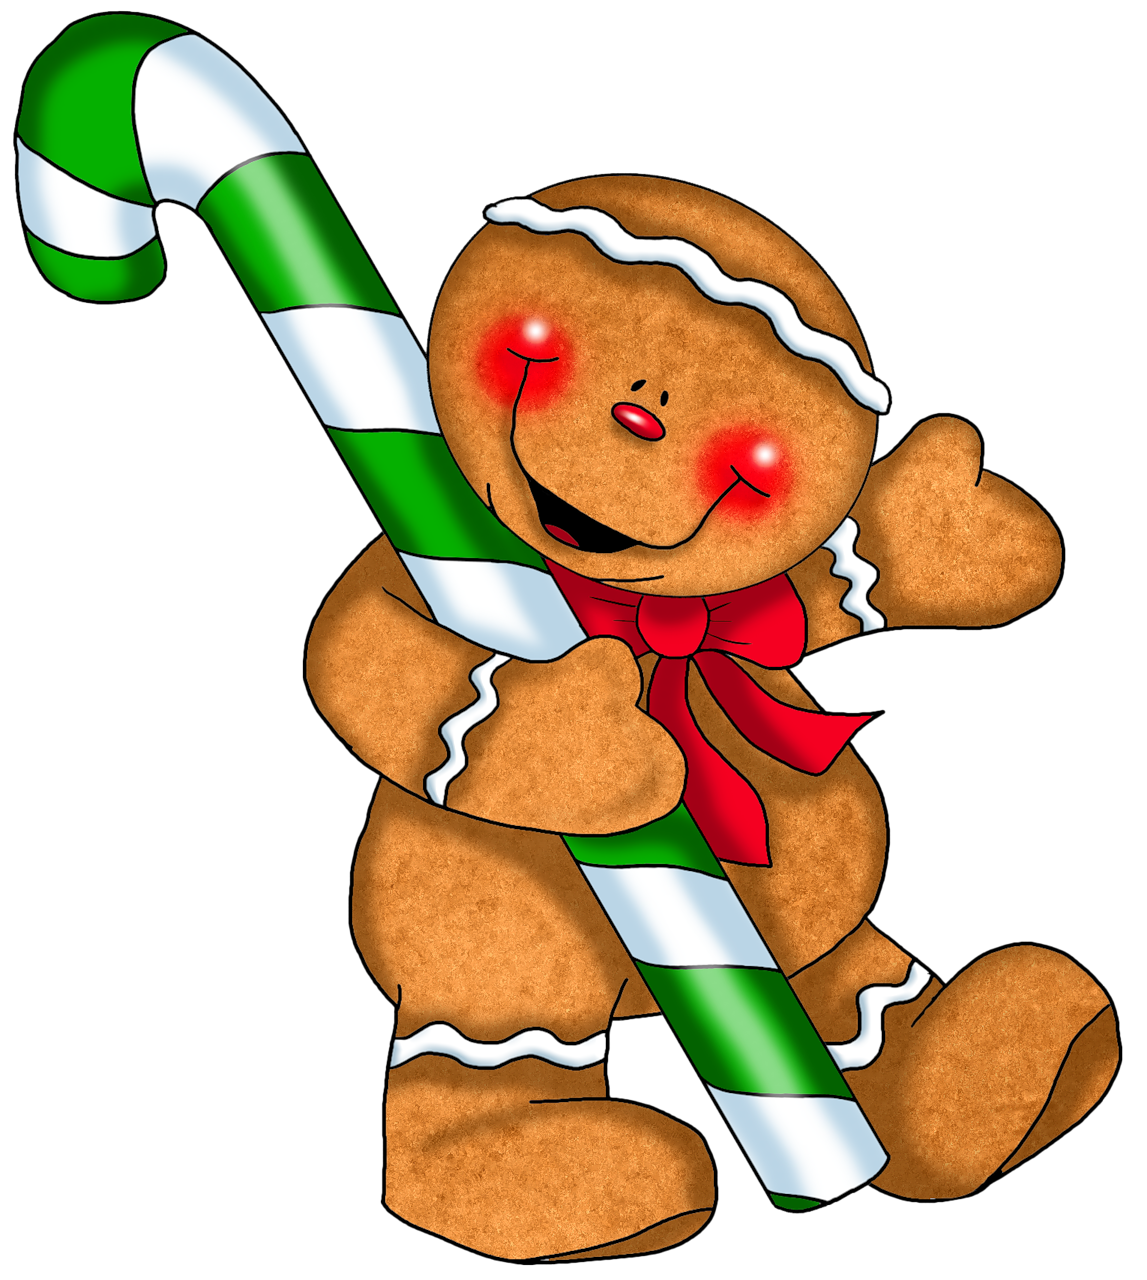 Gingerbread clipart couple. Ornament with candy cane